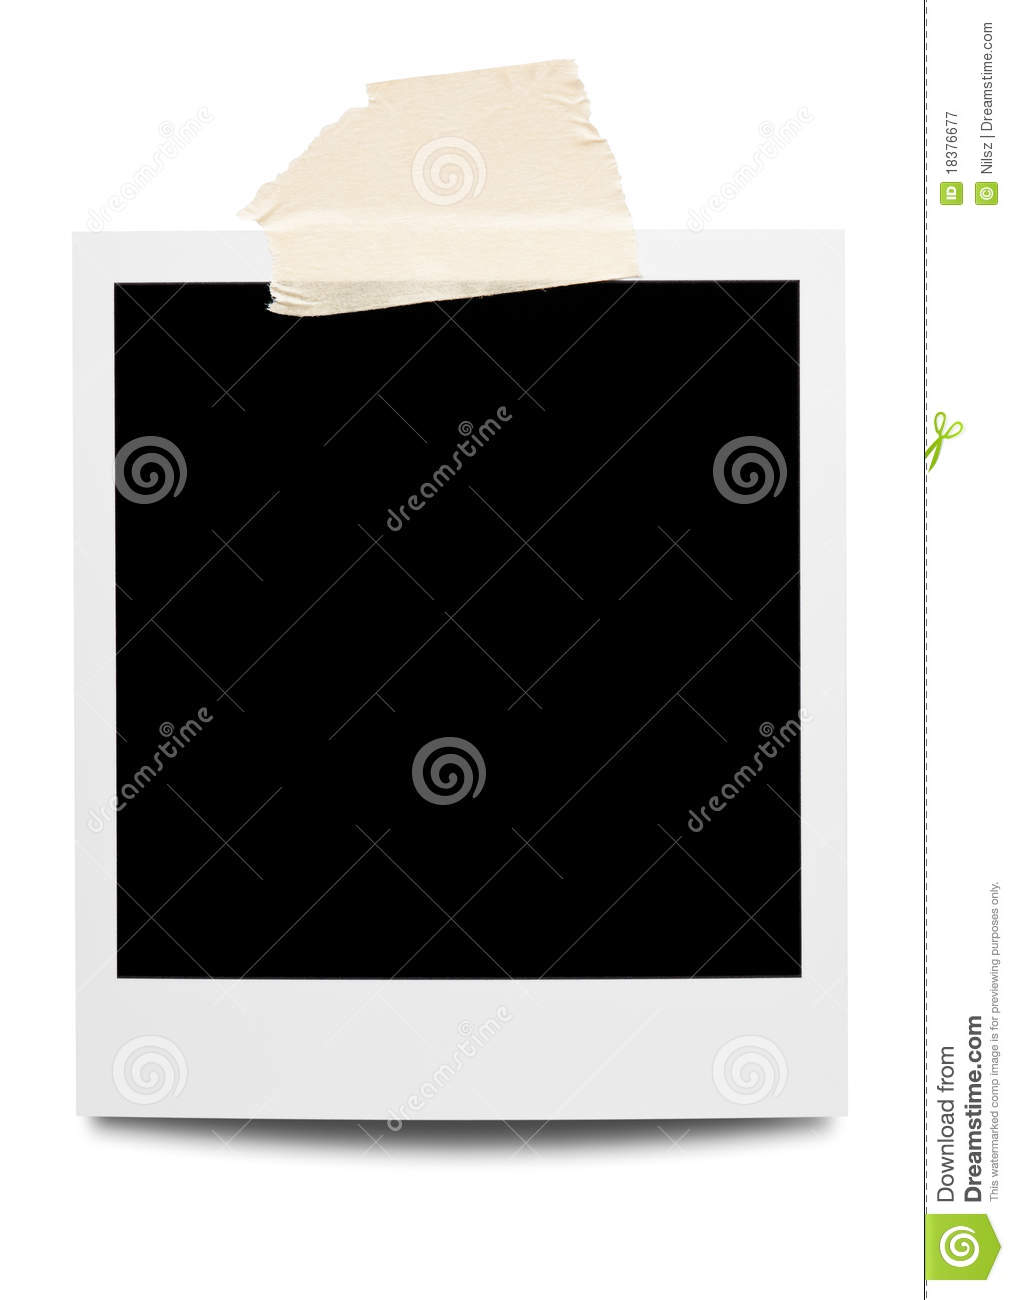 Taped Down Polaroid Picture Frame Stock Image Image Of